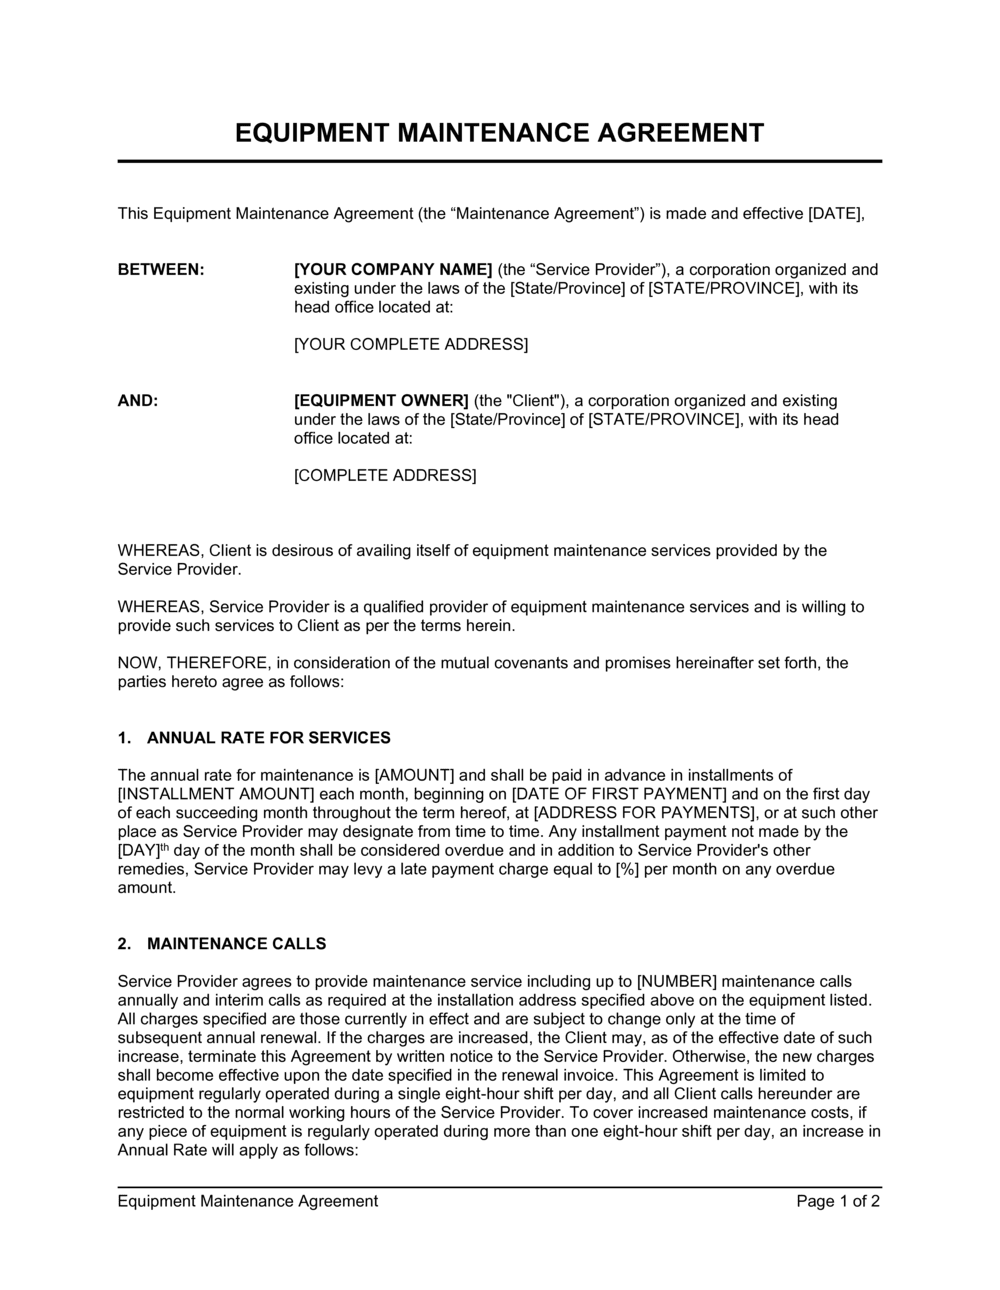 Business-in-a-Box's Equipment Maintenance Agreement Template